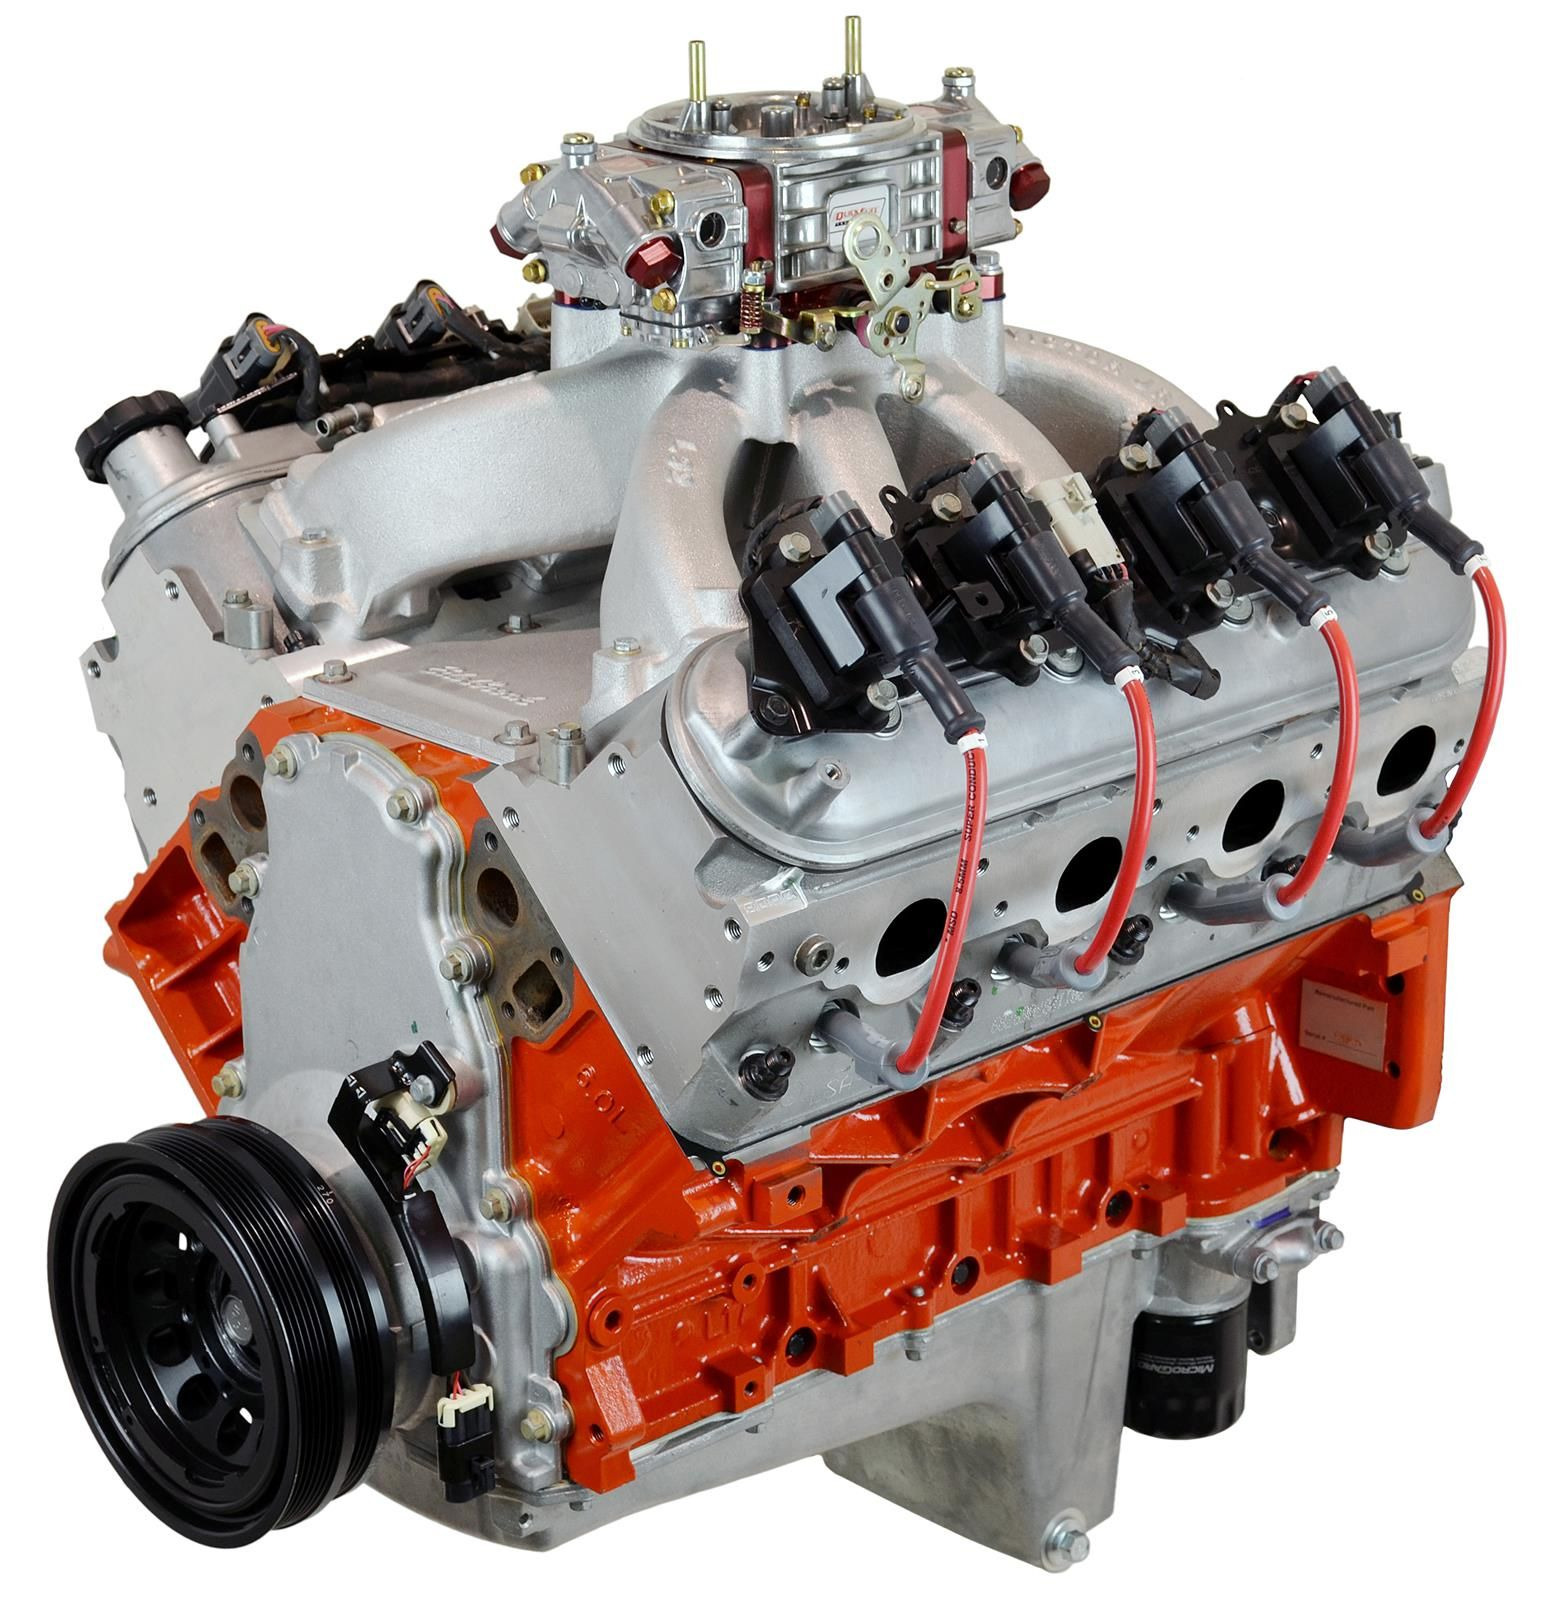 Iii iv series of engines is the